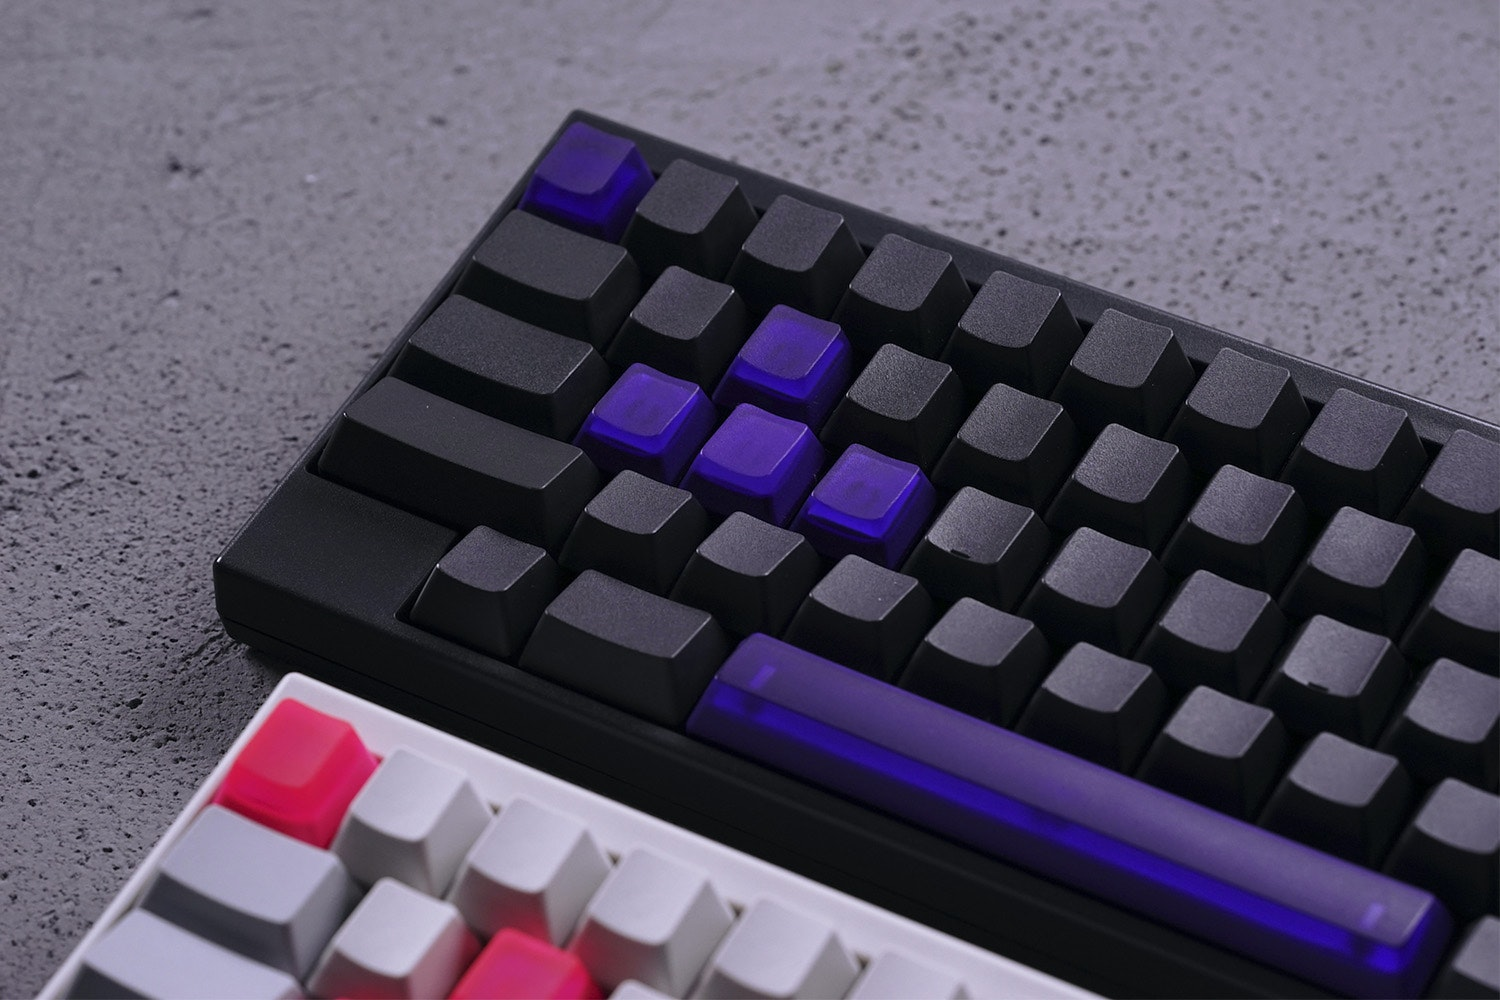 Hot Keys Project x MiTo Laser Artisan Keycaps